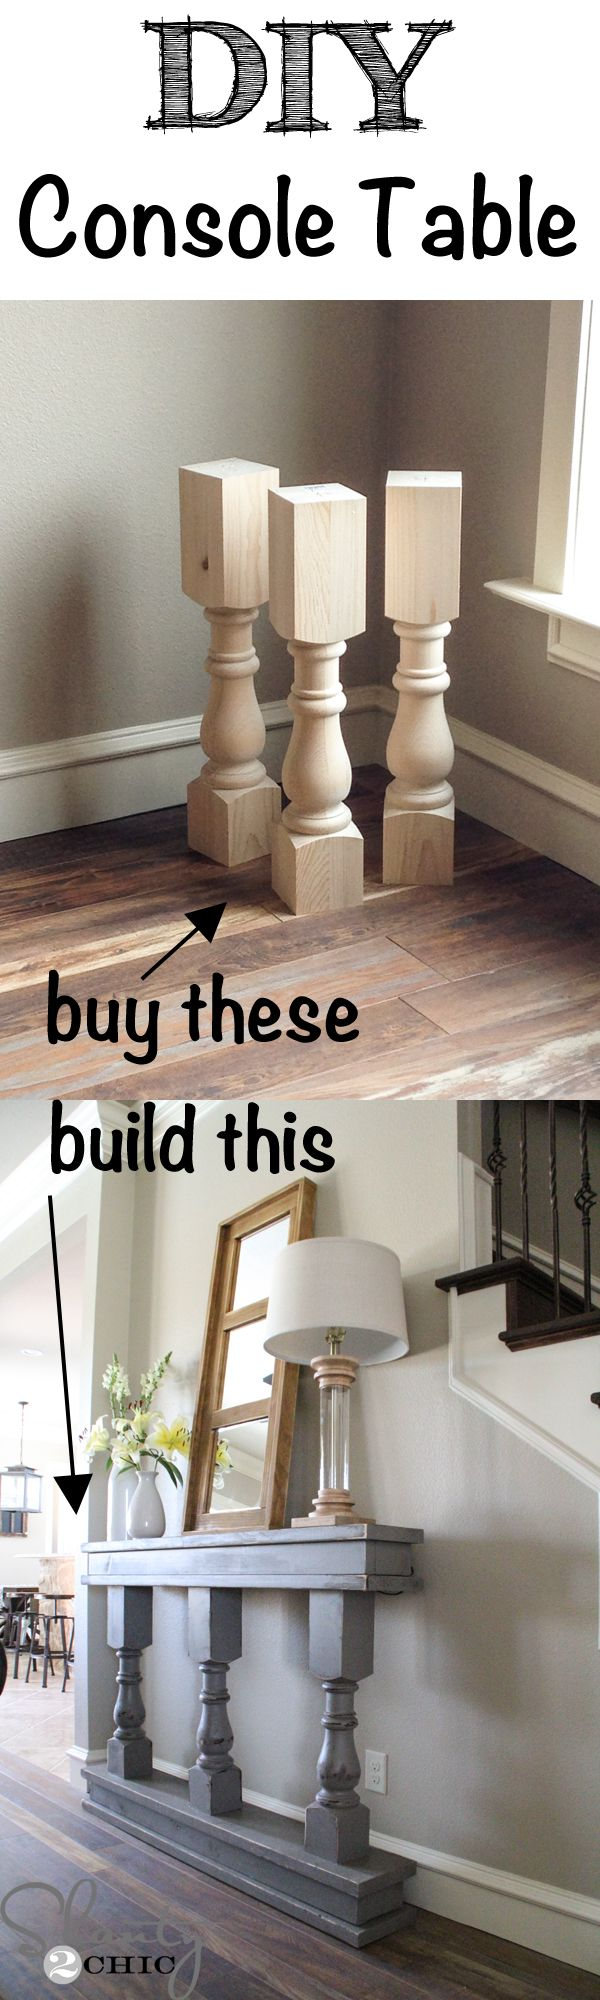 Super easy DIY Console Table!